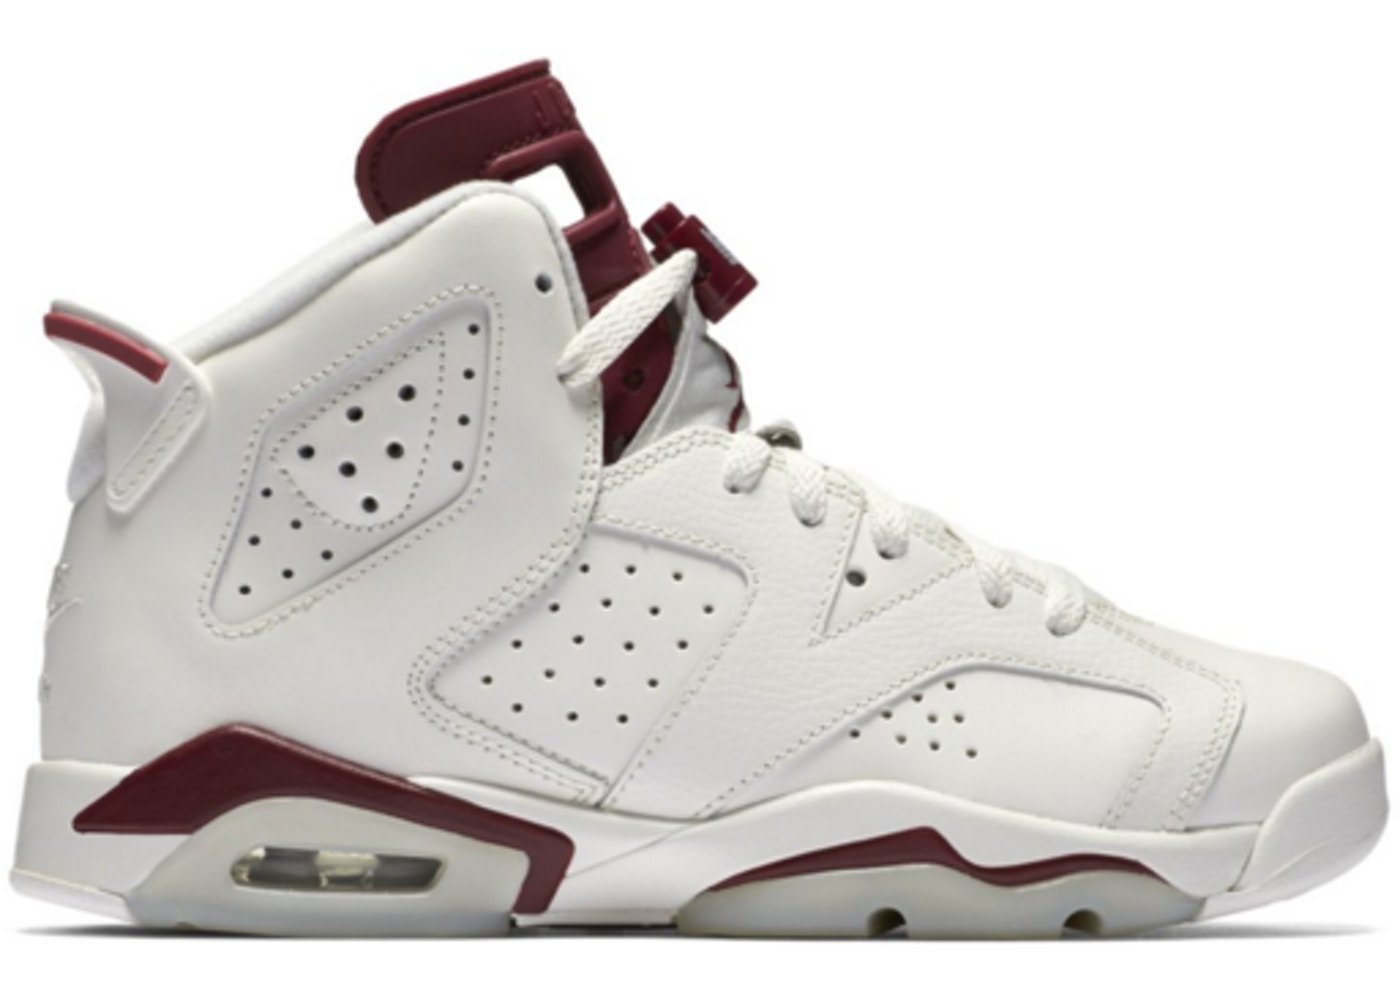 3344462df3bb0f Jordan 6 Retro Maroon 2015 (GS) - 836342-115 384665-116 (Overseas)